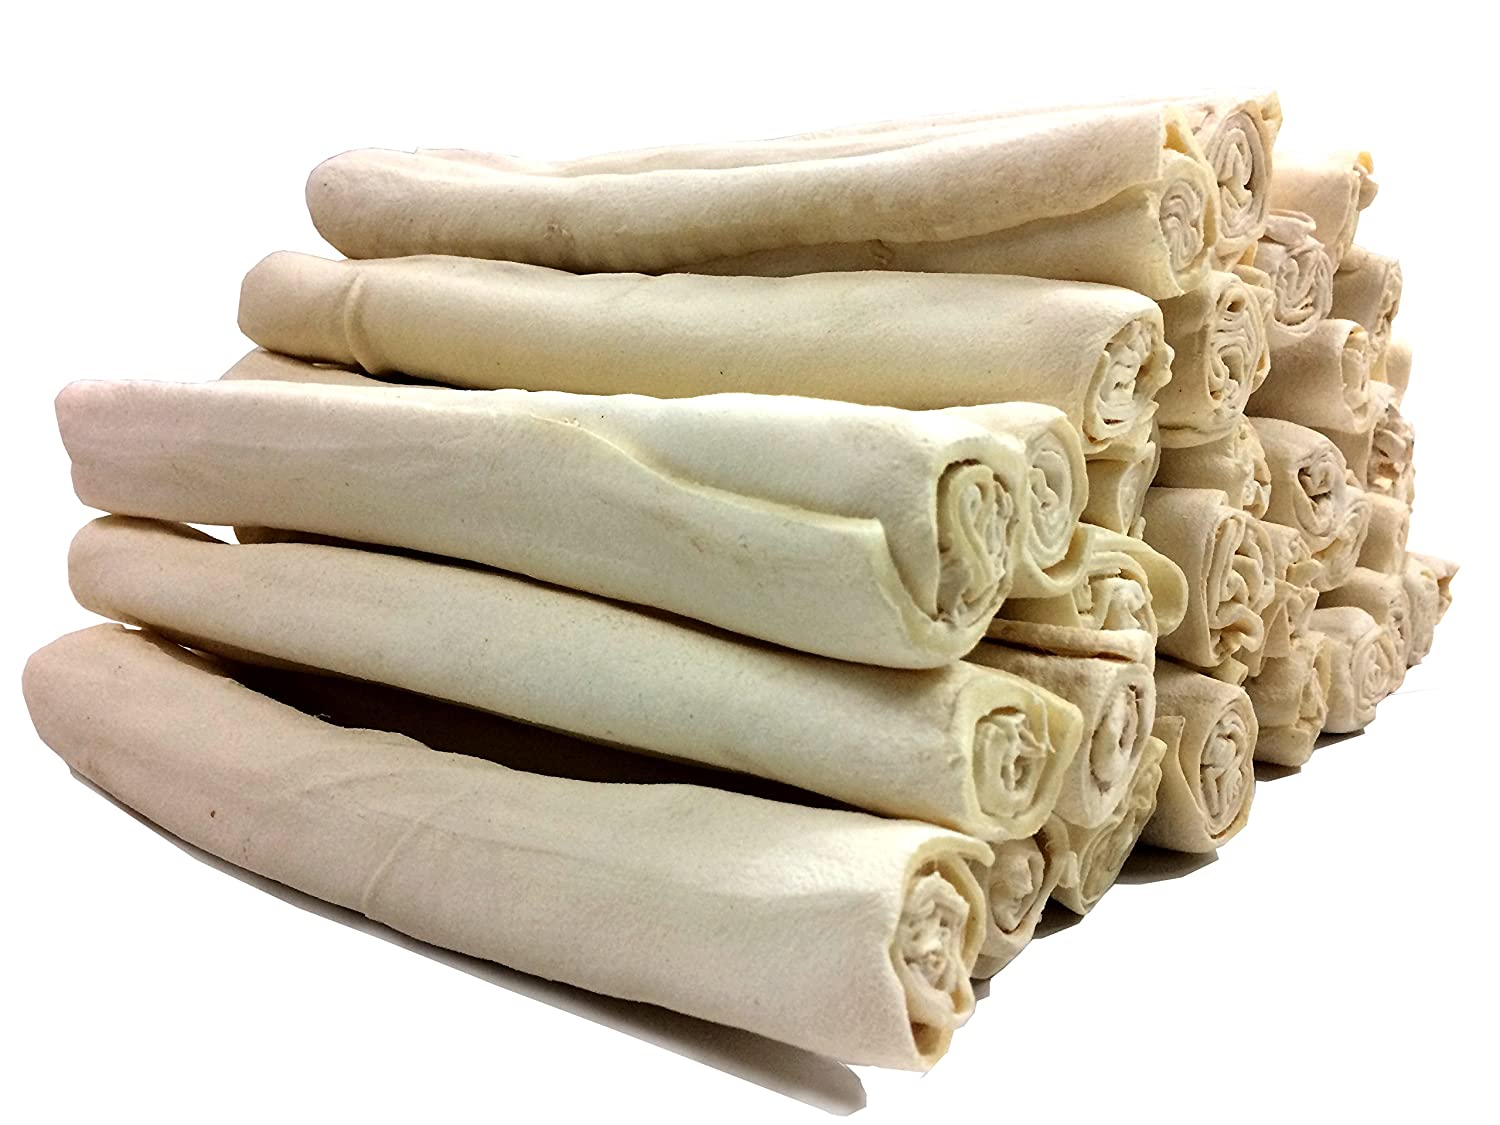 Rawhide Retriever Roll Bulk - 100% Natural Rawhide Roll Dog Treats